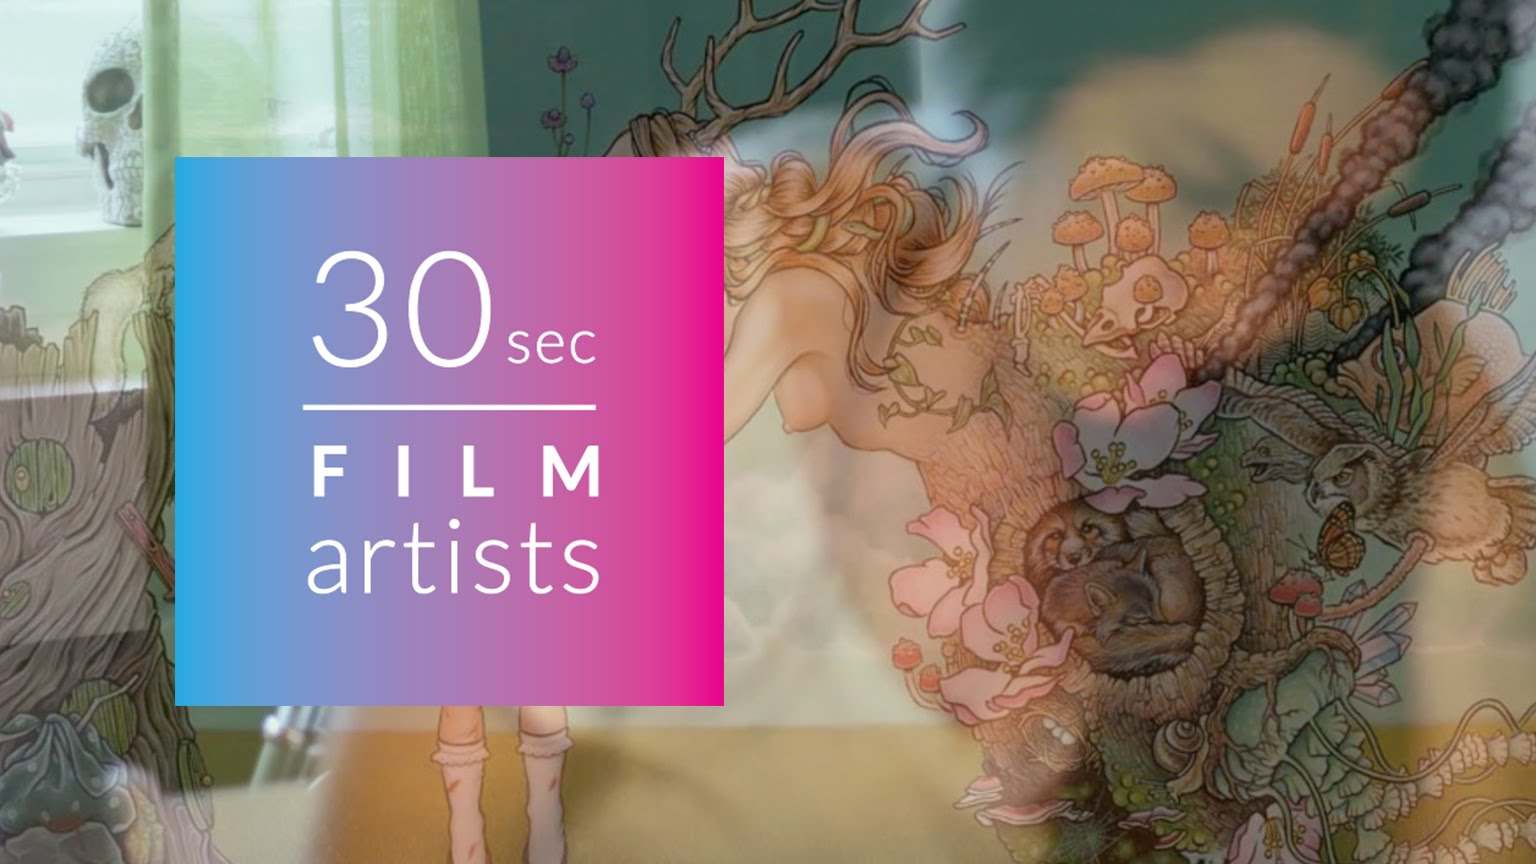 30sec film artists Vol.9 – Tara Krebs